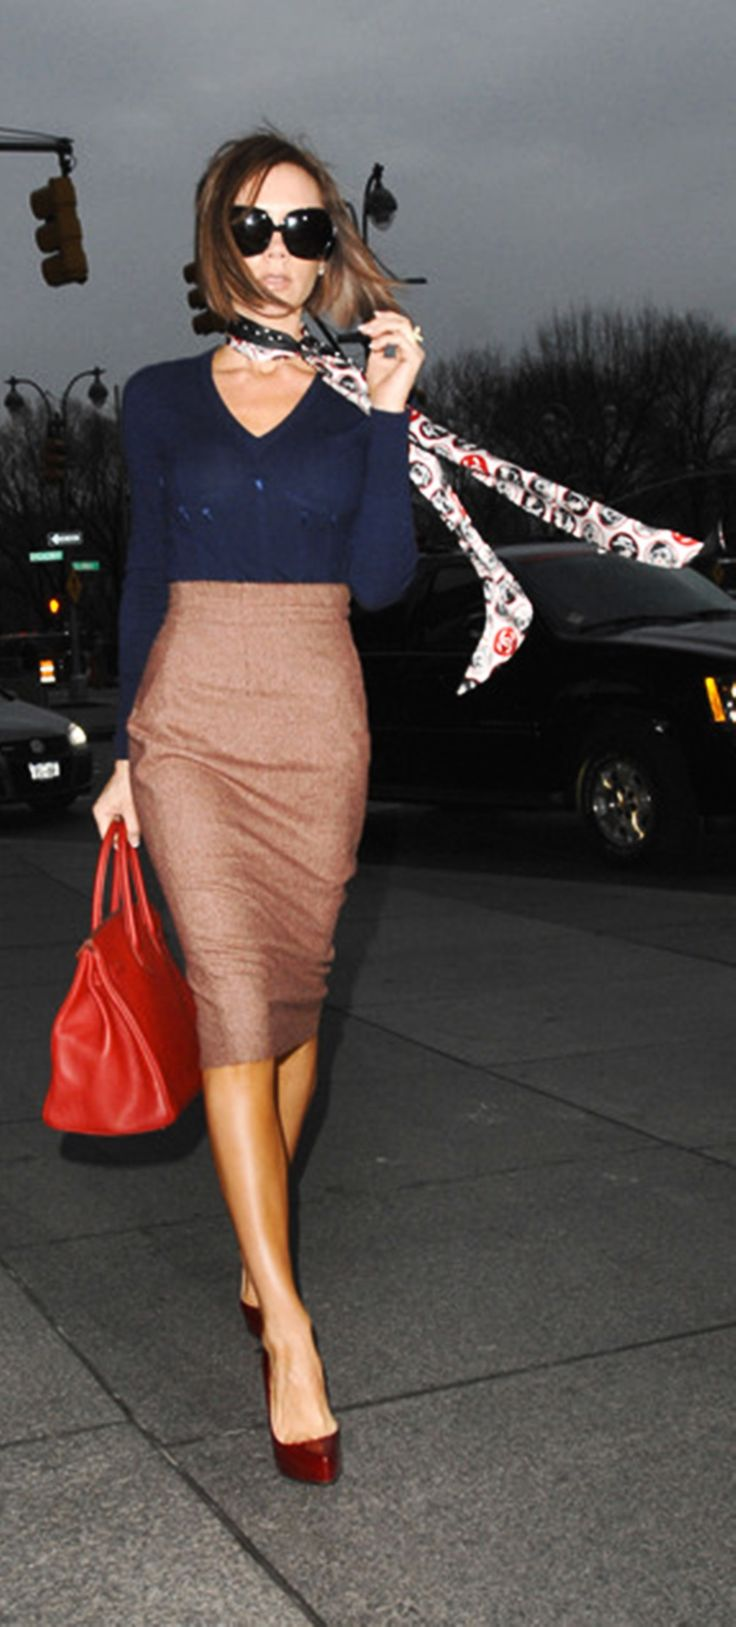 Victoria beckham skirts latest fashion 6